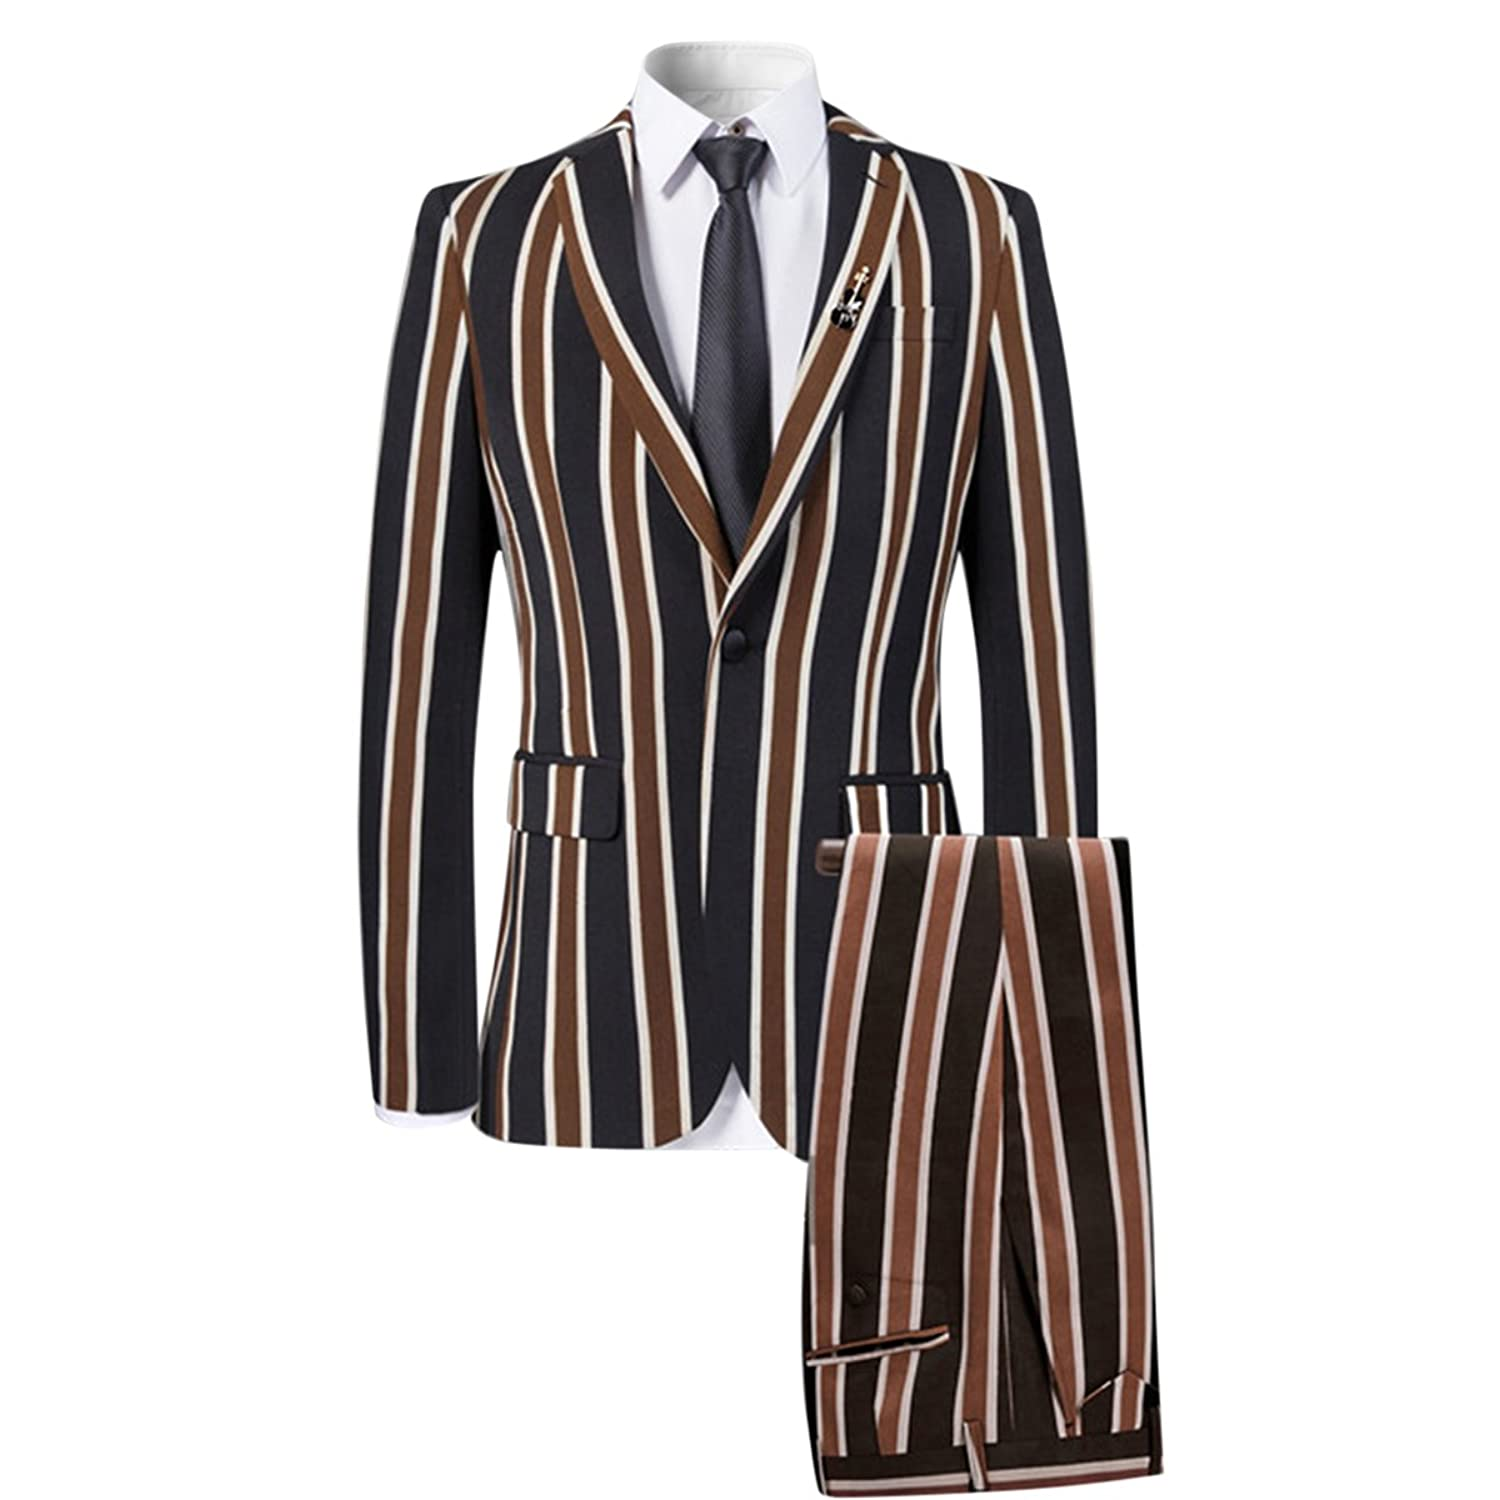 1920s Men's Suits History Colored Striped 3 Piece Suit Slim Fit Tuxedo Blazer Jacket Pants Vest Set $105.99 AT vintagedancer.com